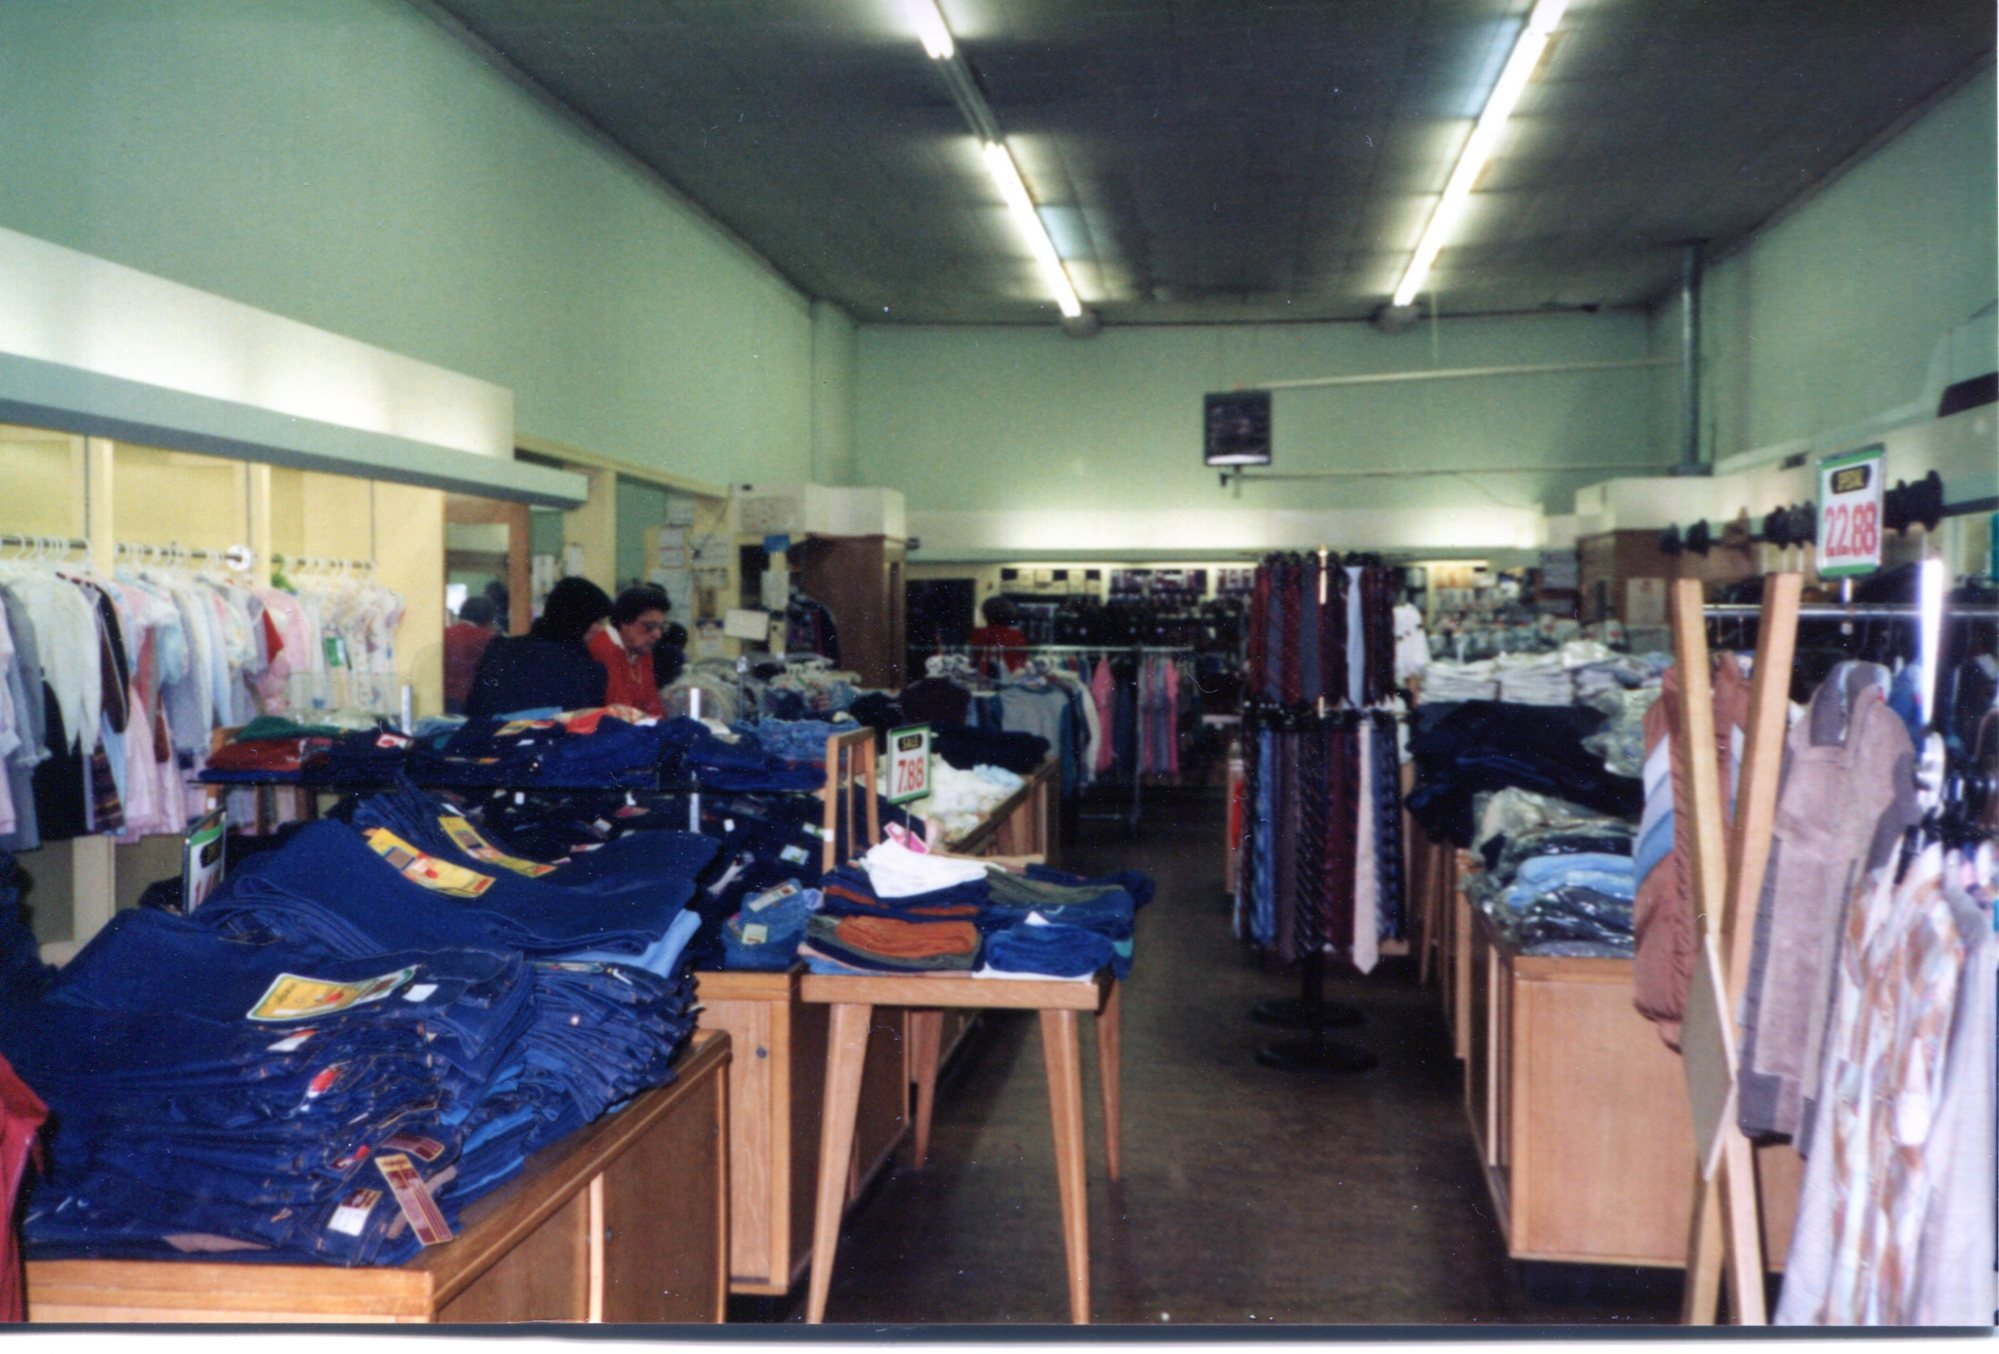 Inside Stroup's Department Store